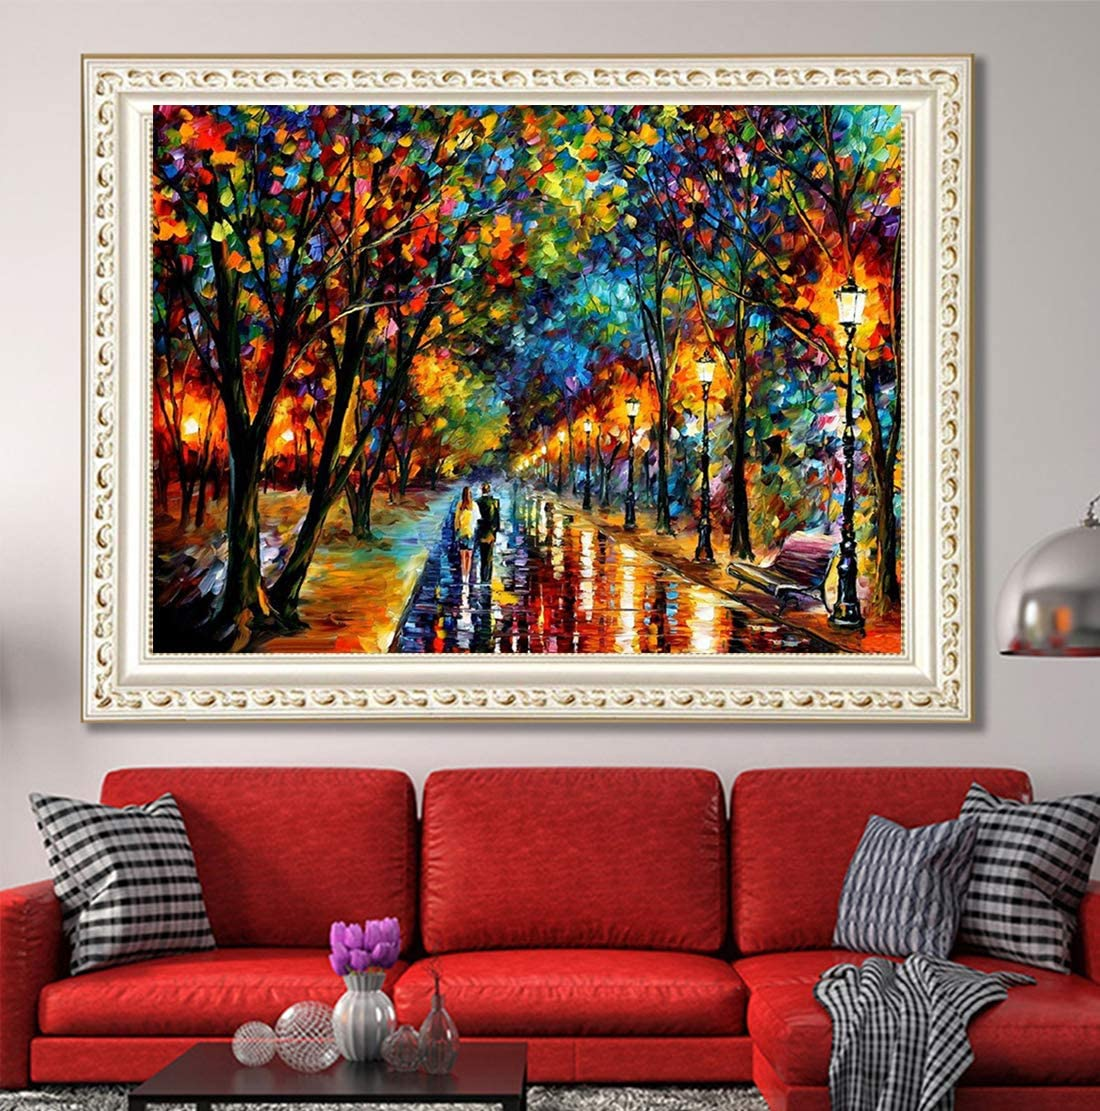 Full Diamond Scenery Rhinestone Embroidery Cross Stitch Arts Craft for Canvas Wall Decor DIY 5D Diamond Painting by Number Kit